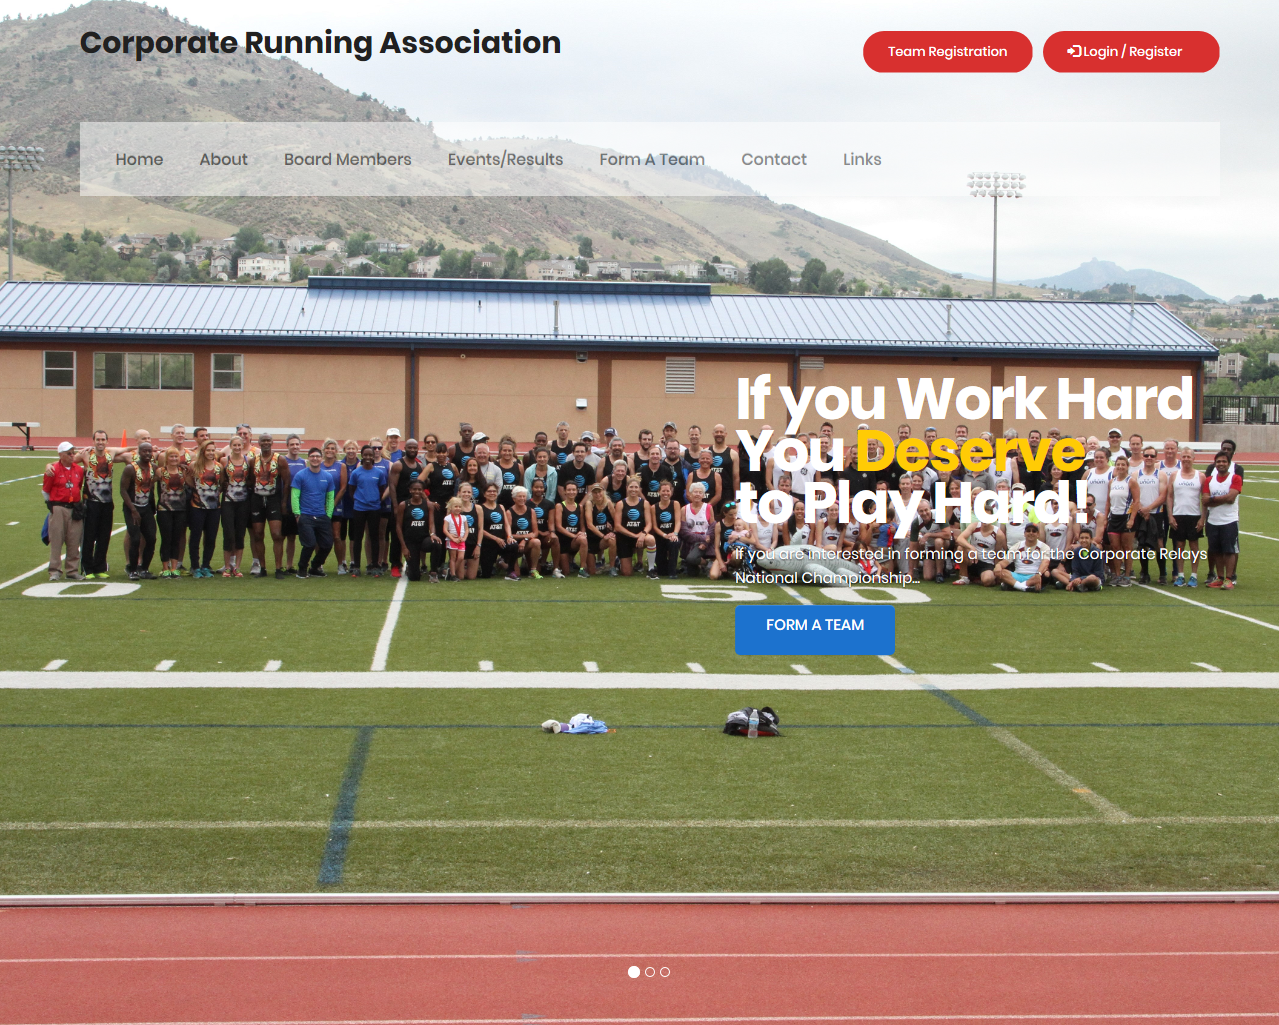 Corporate Running Association